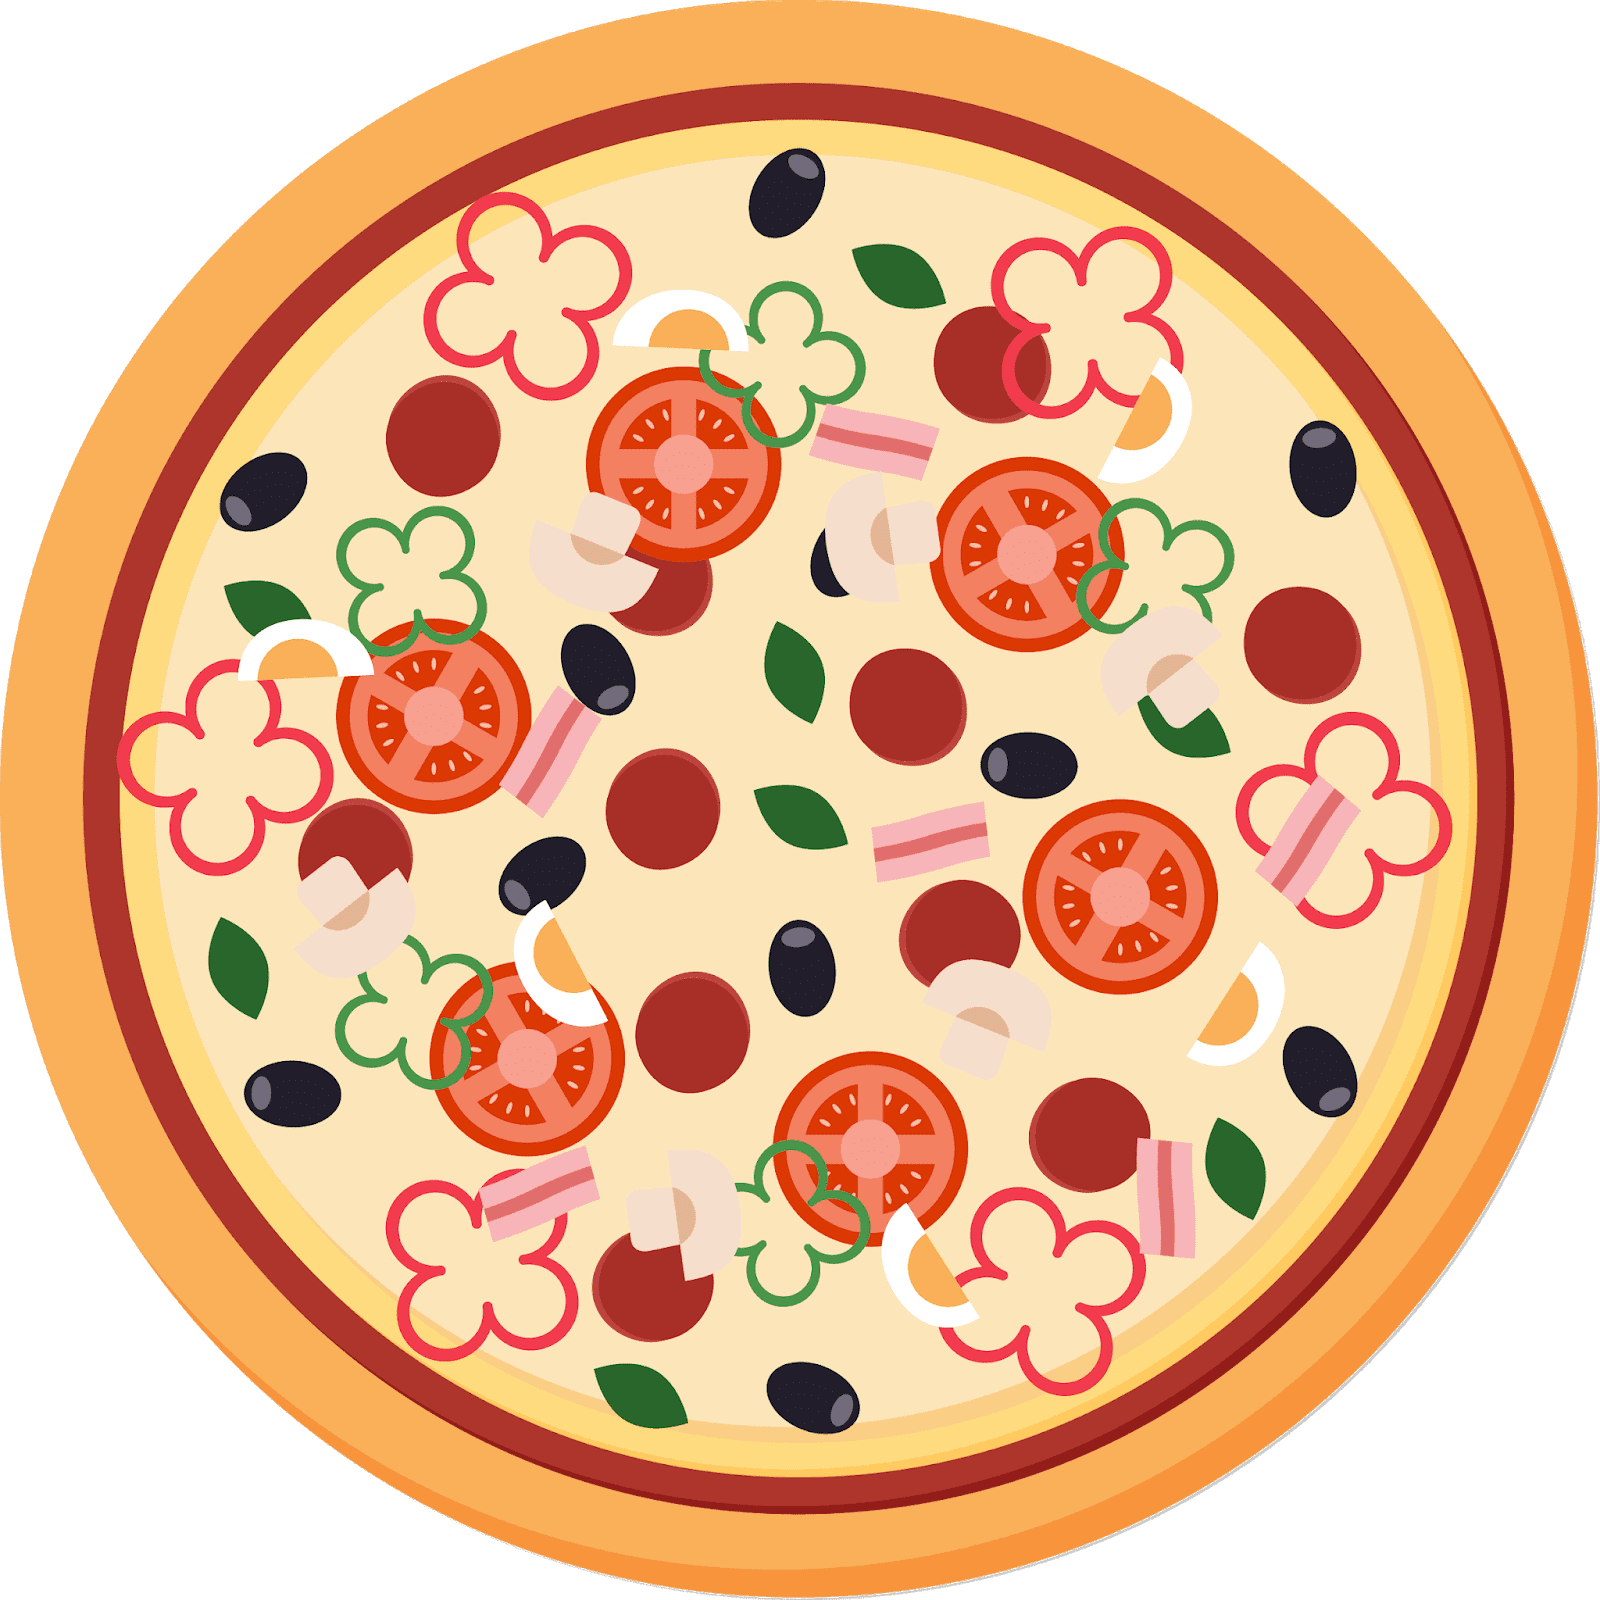 Transparent clipart of pizza - Pizza Images Clipart- Pizza, Sicilian Pizza, Italian - Pizza Vector Png Free